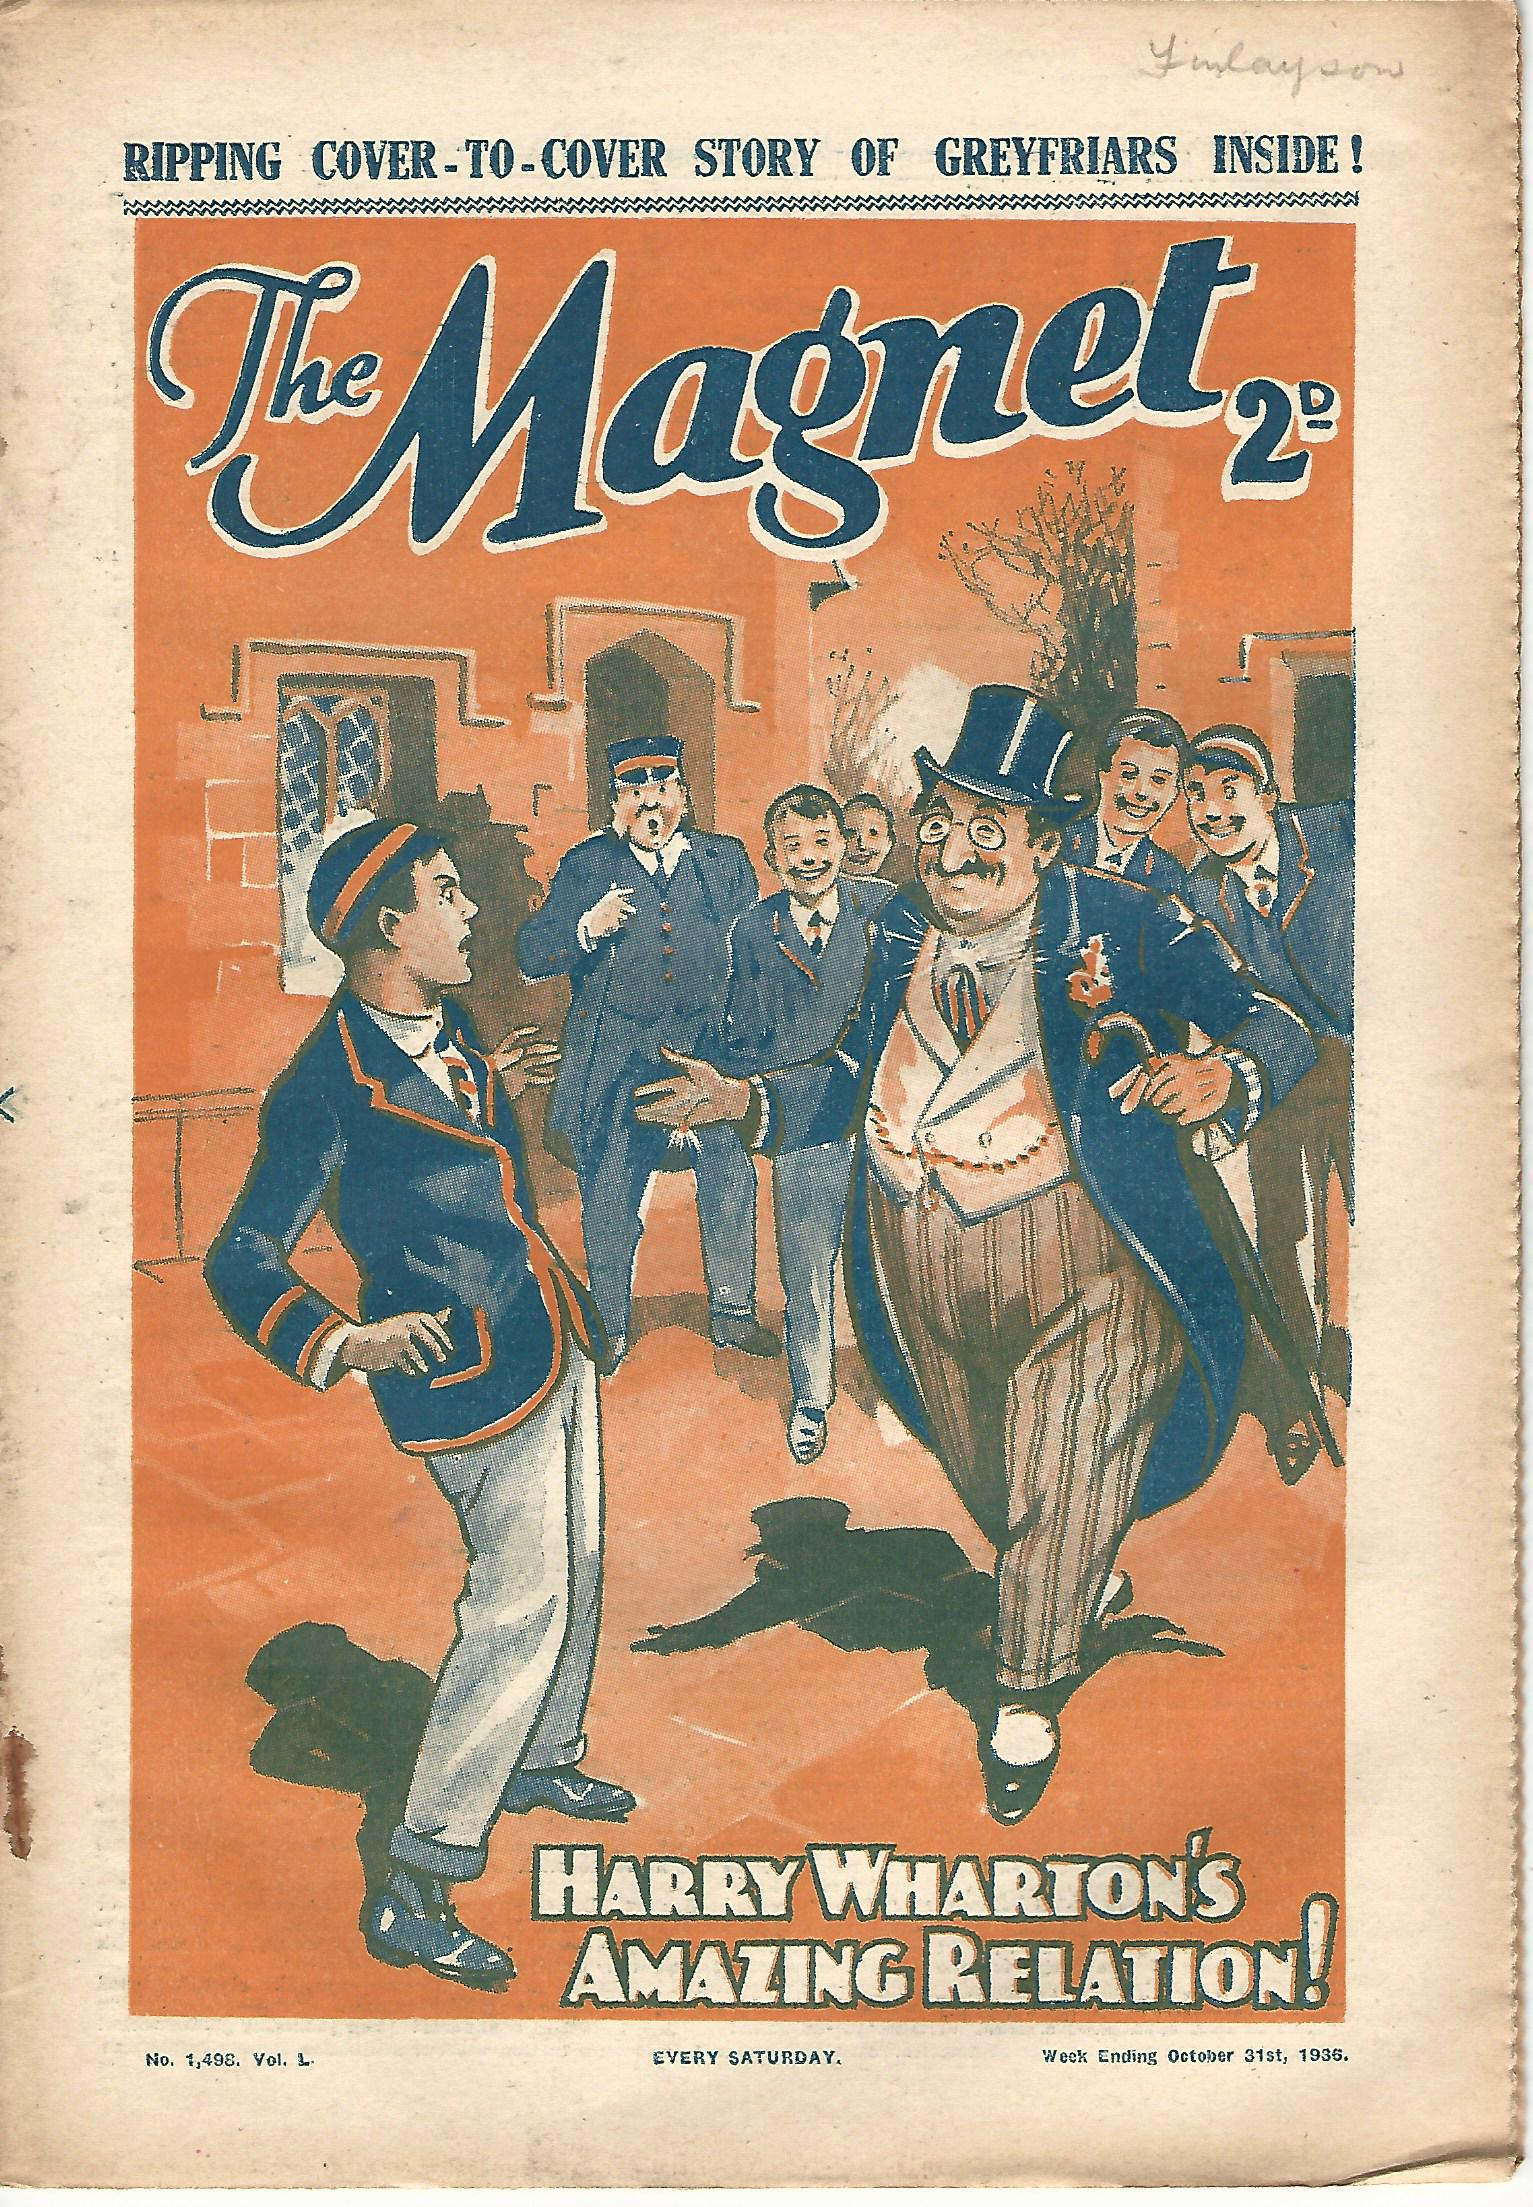 Image for The Magnet No.1498 Vol. L.